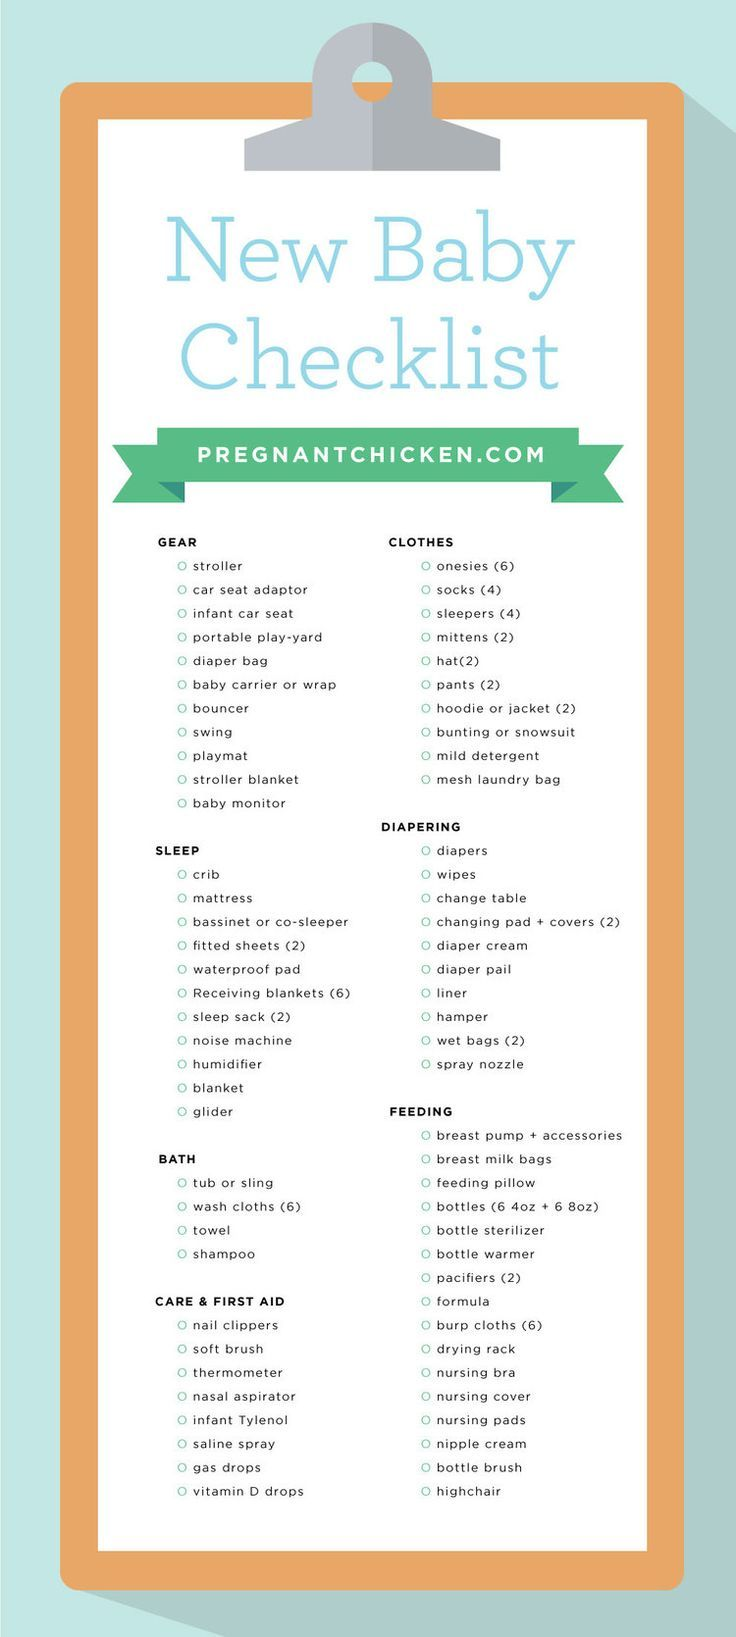 New Baby Checklist  What To Get When Expecting  Babies And Pregnancy